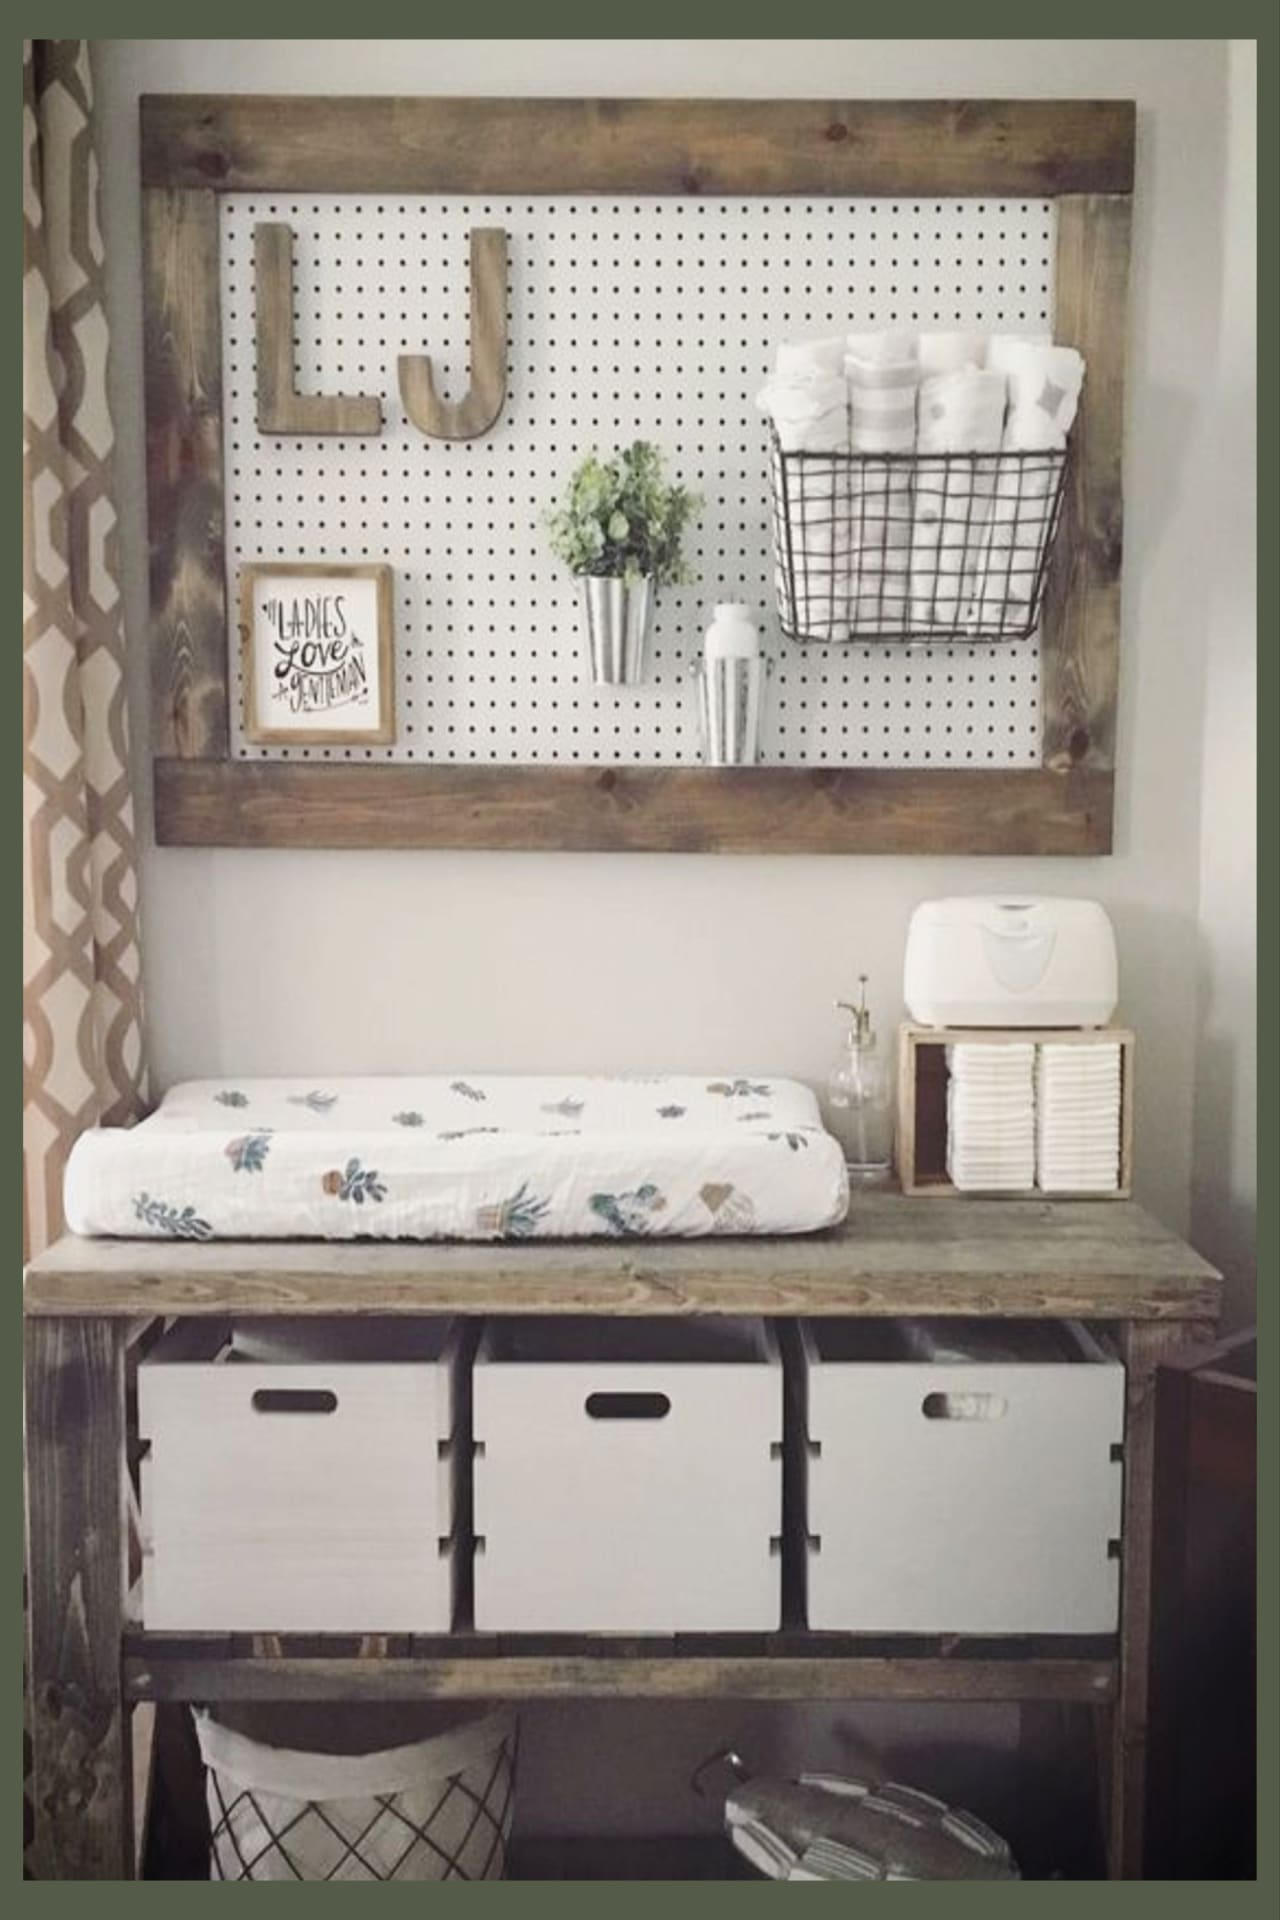 Baby boy rustic nursery ideas - rustic nursery changing table and wall decor ideas